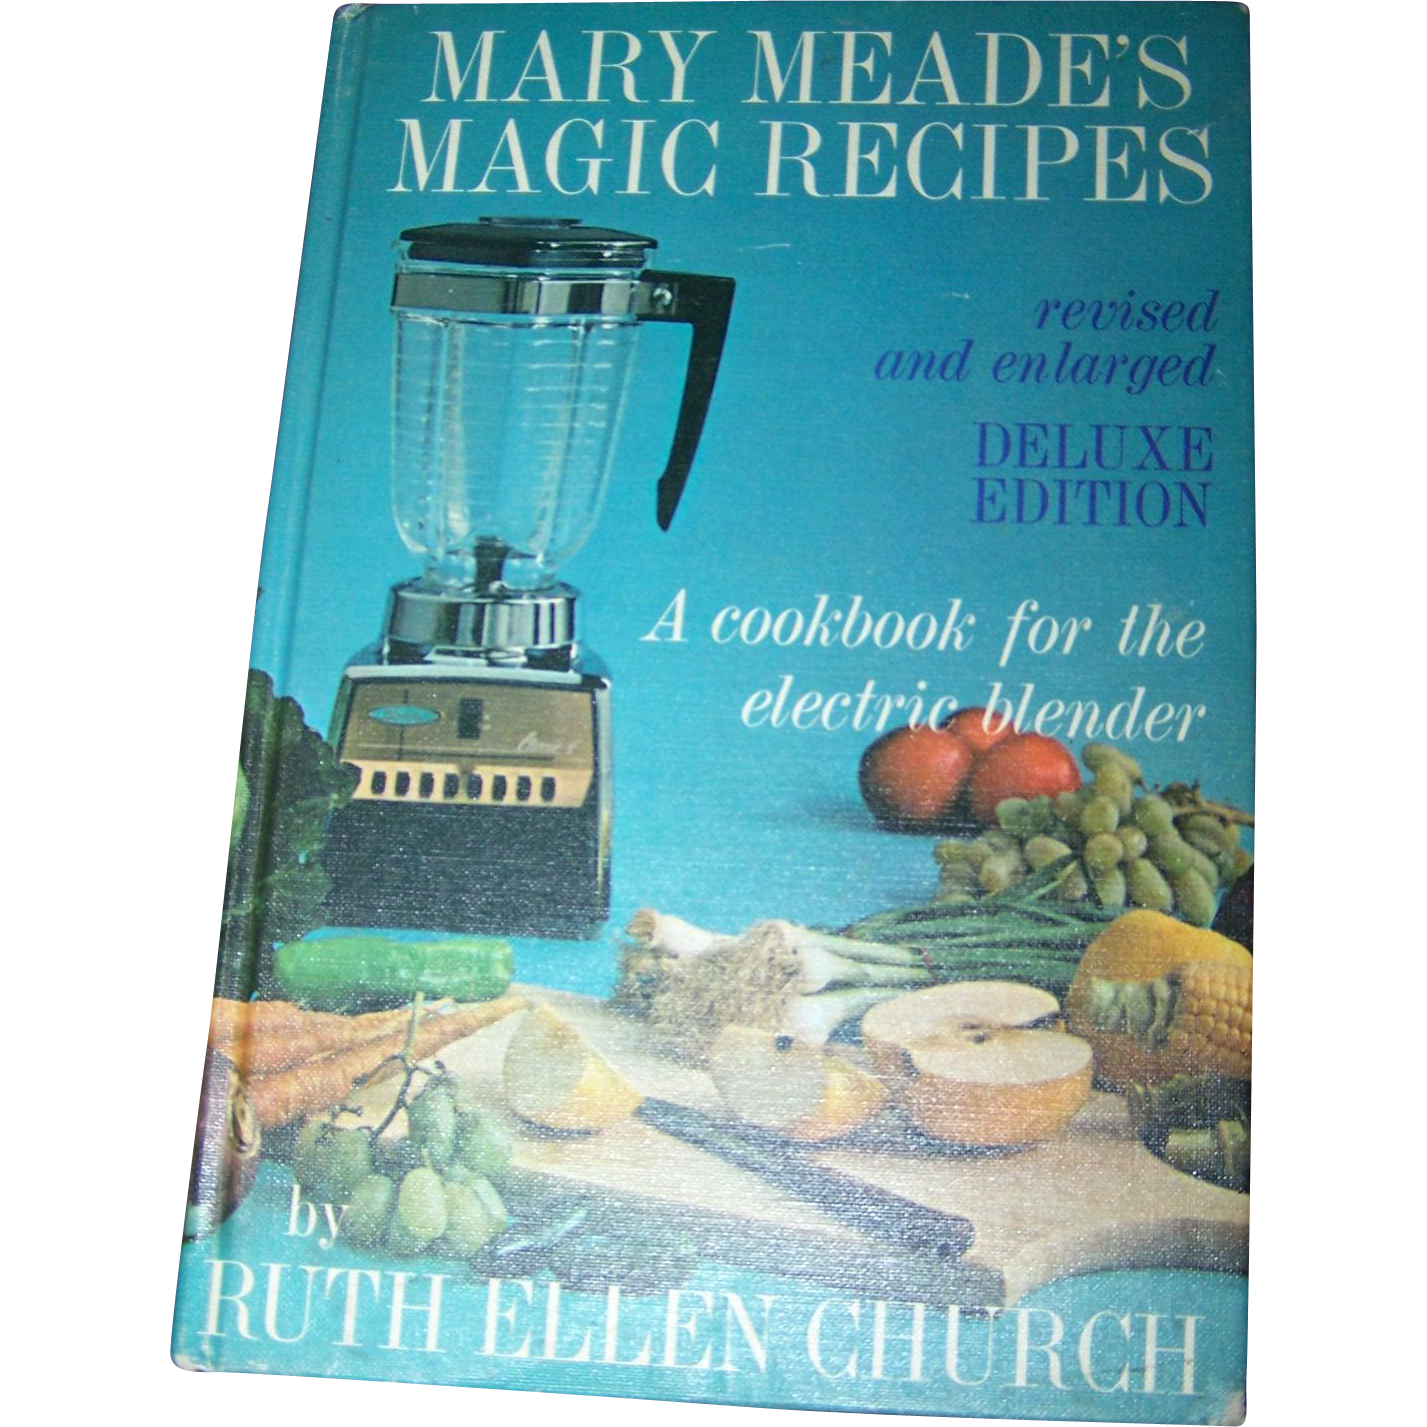 A Cook Book for the Electric Blender  Mary Meade's Magic Recipes by Ruth Ellen Church